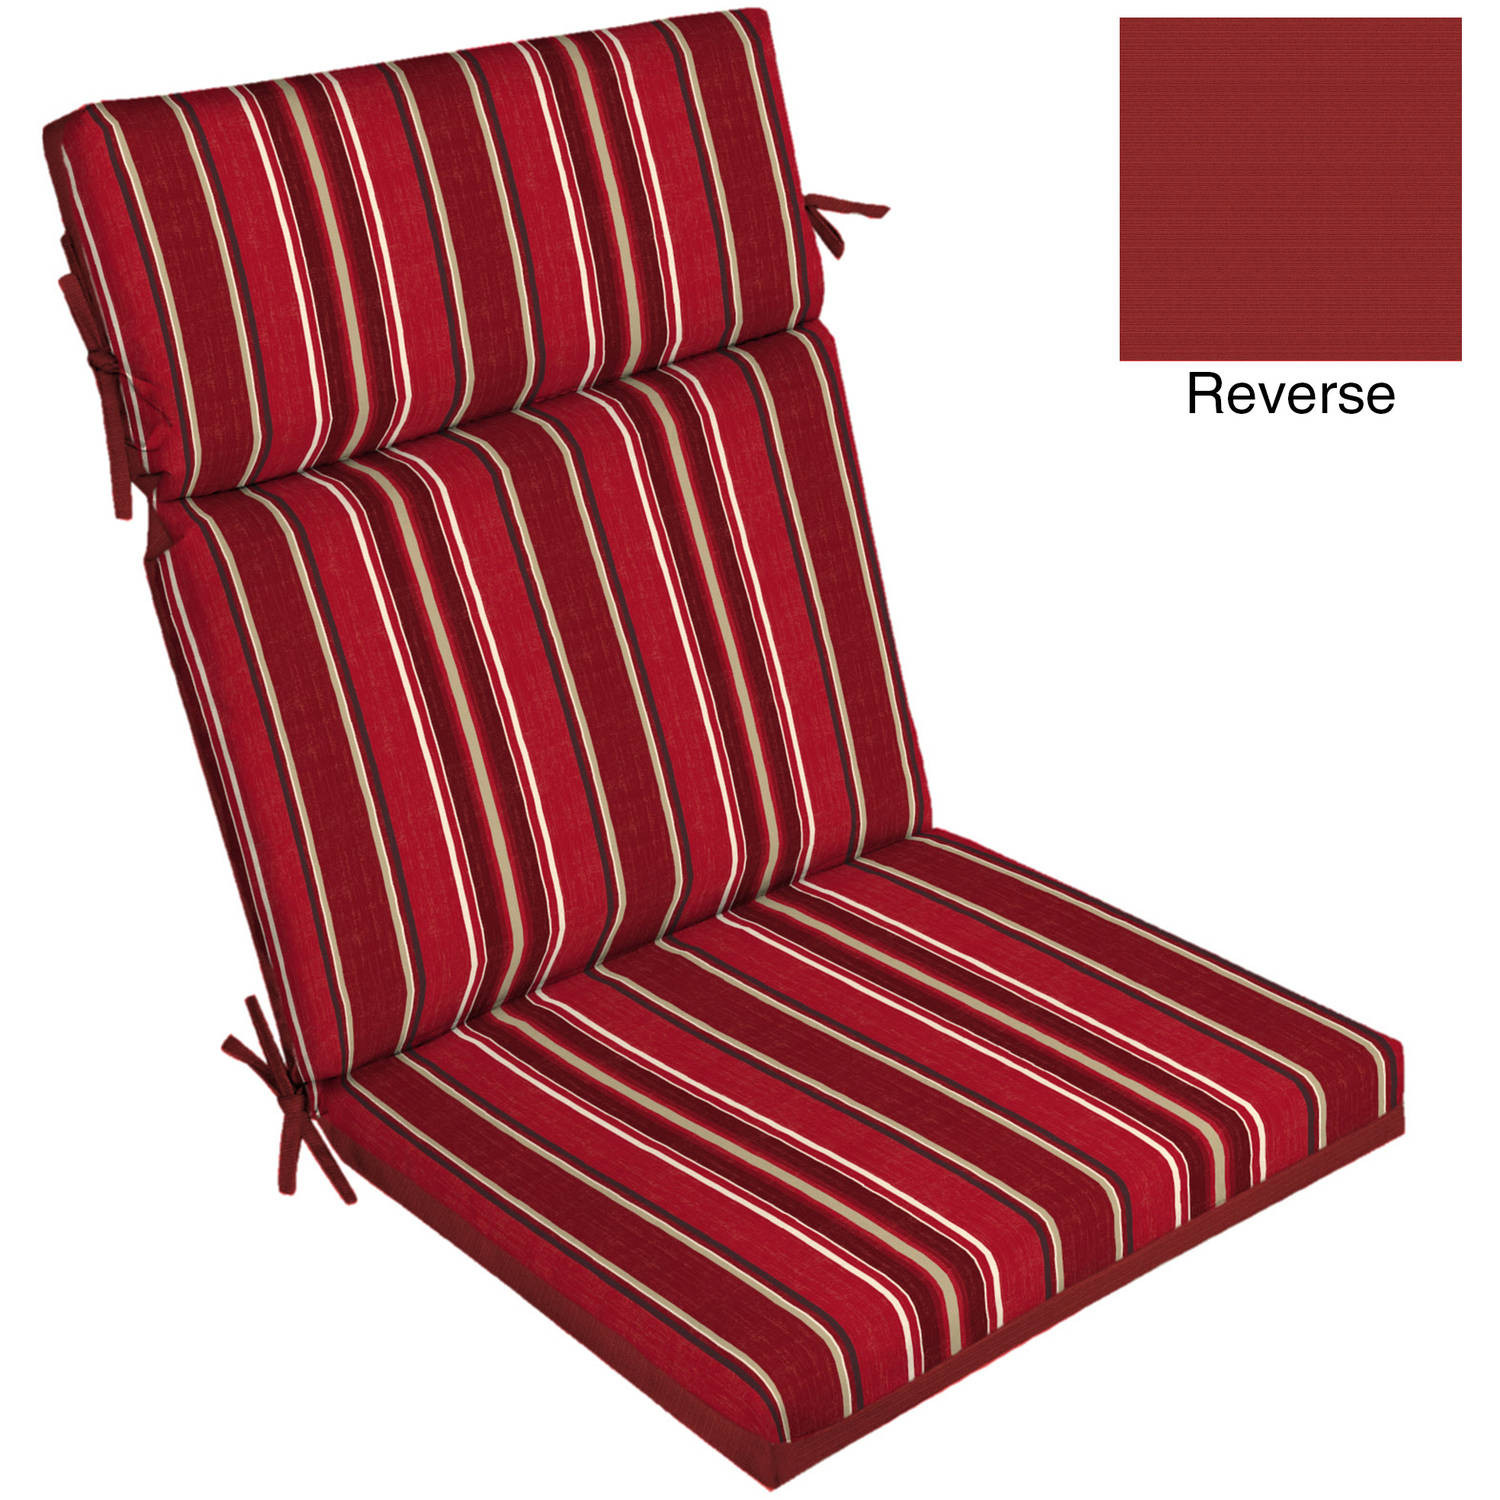 Best ideas about Patio Furniture Cushion Covers . Save or Pin Best Patio Furniture Cushion Covers Fort Chair Cushions Now.